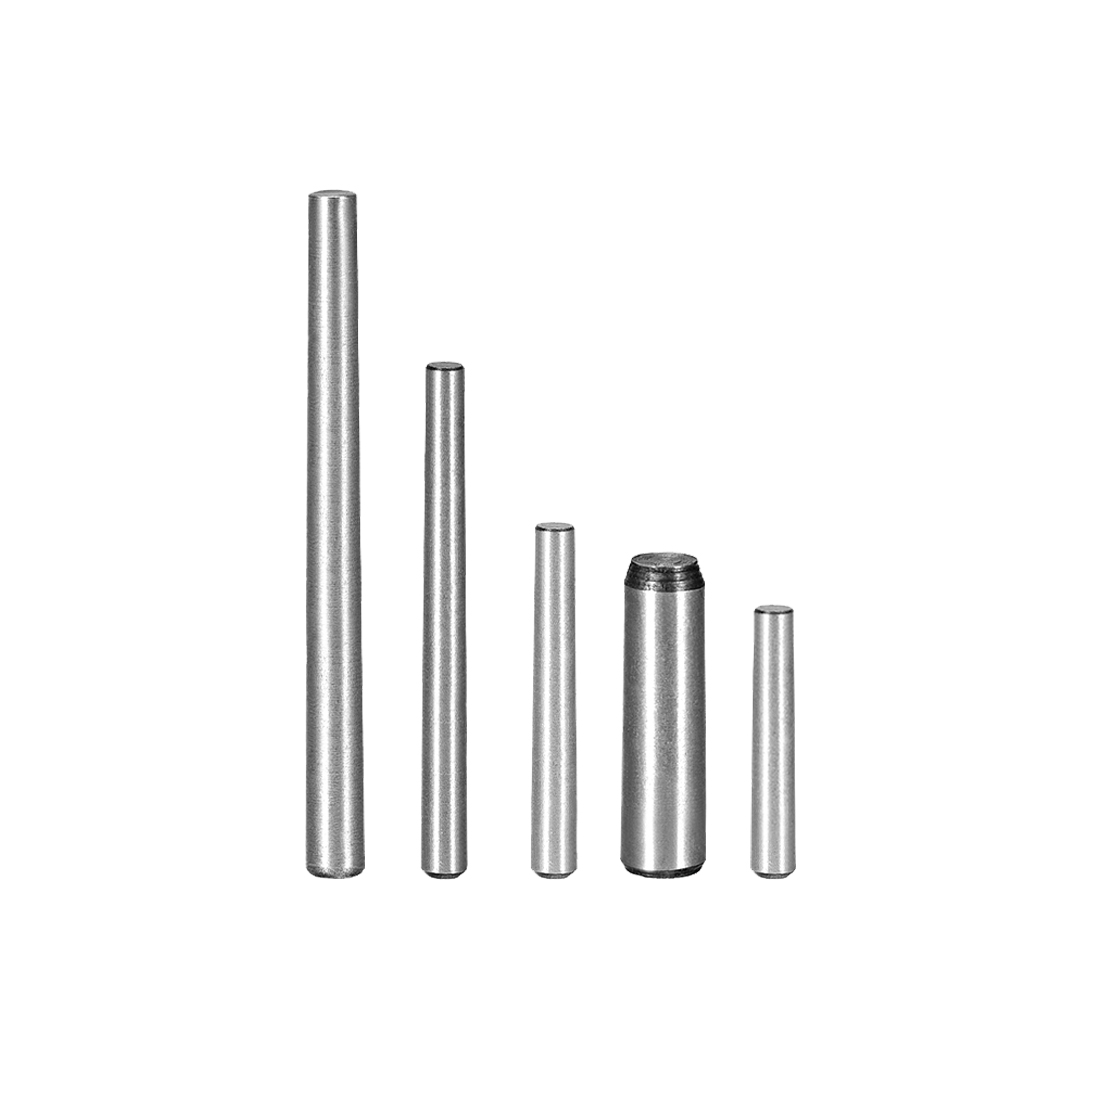 Uxcell 25Pcs Carbon Steel 3x12/16/20/25/30/35/40/50/60mm 6x16/20mm 1:50 Taper Pin Release Easily Plain Finish